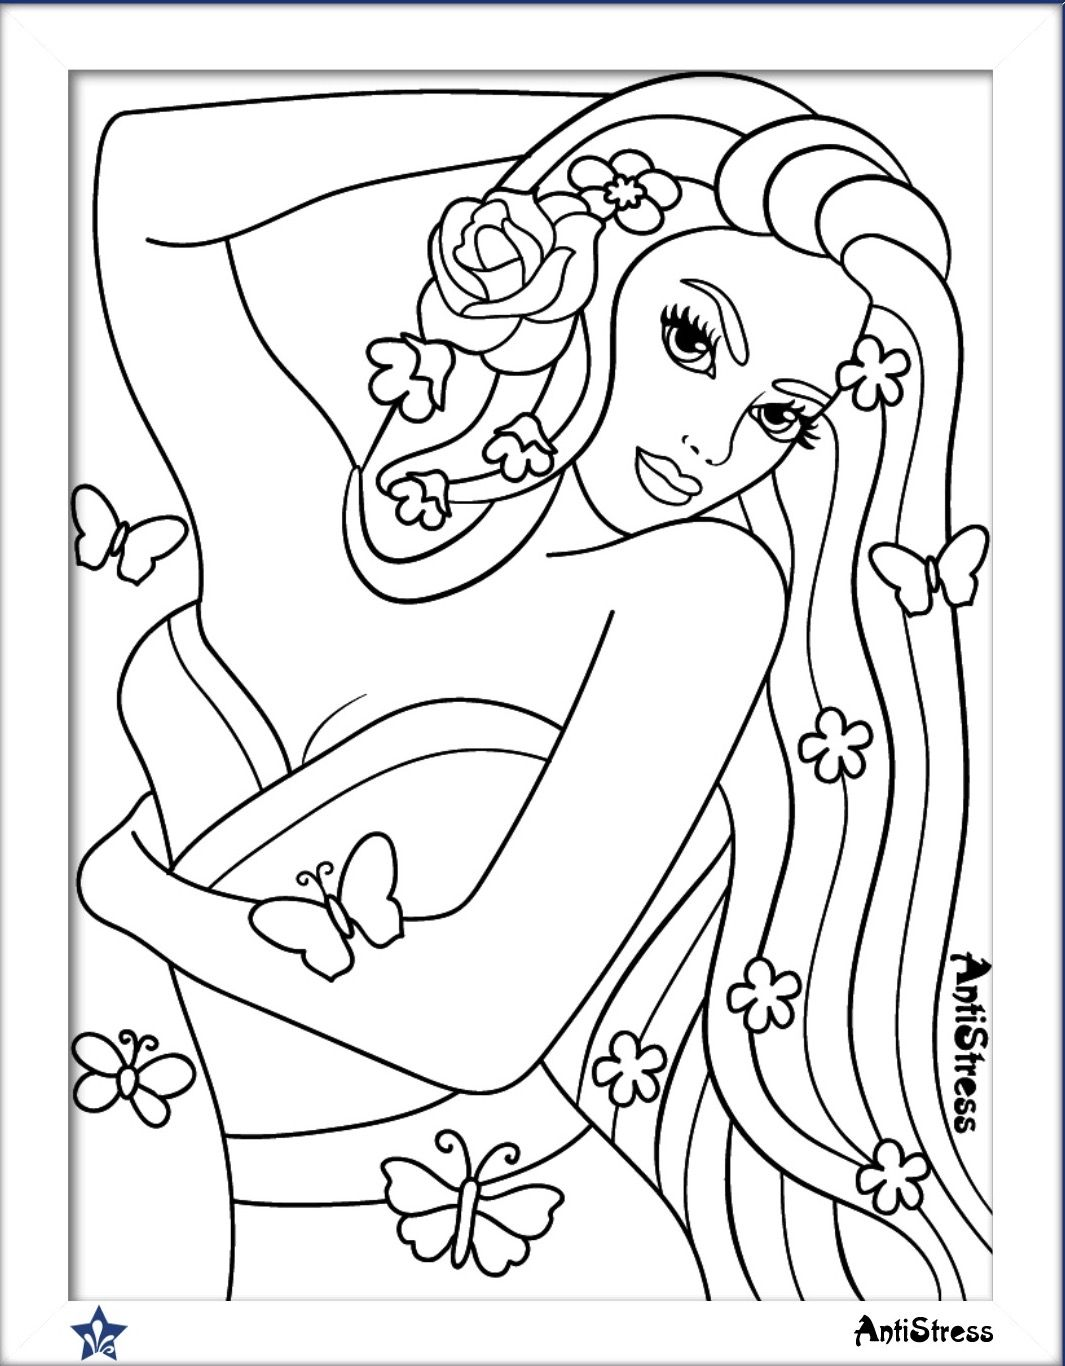 Lettering Ideas Hand Adult Coloring Sheets Colouring Books Stained Glass Fantasy Women Stress Relief Embossing